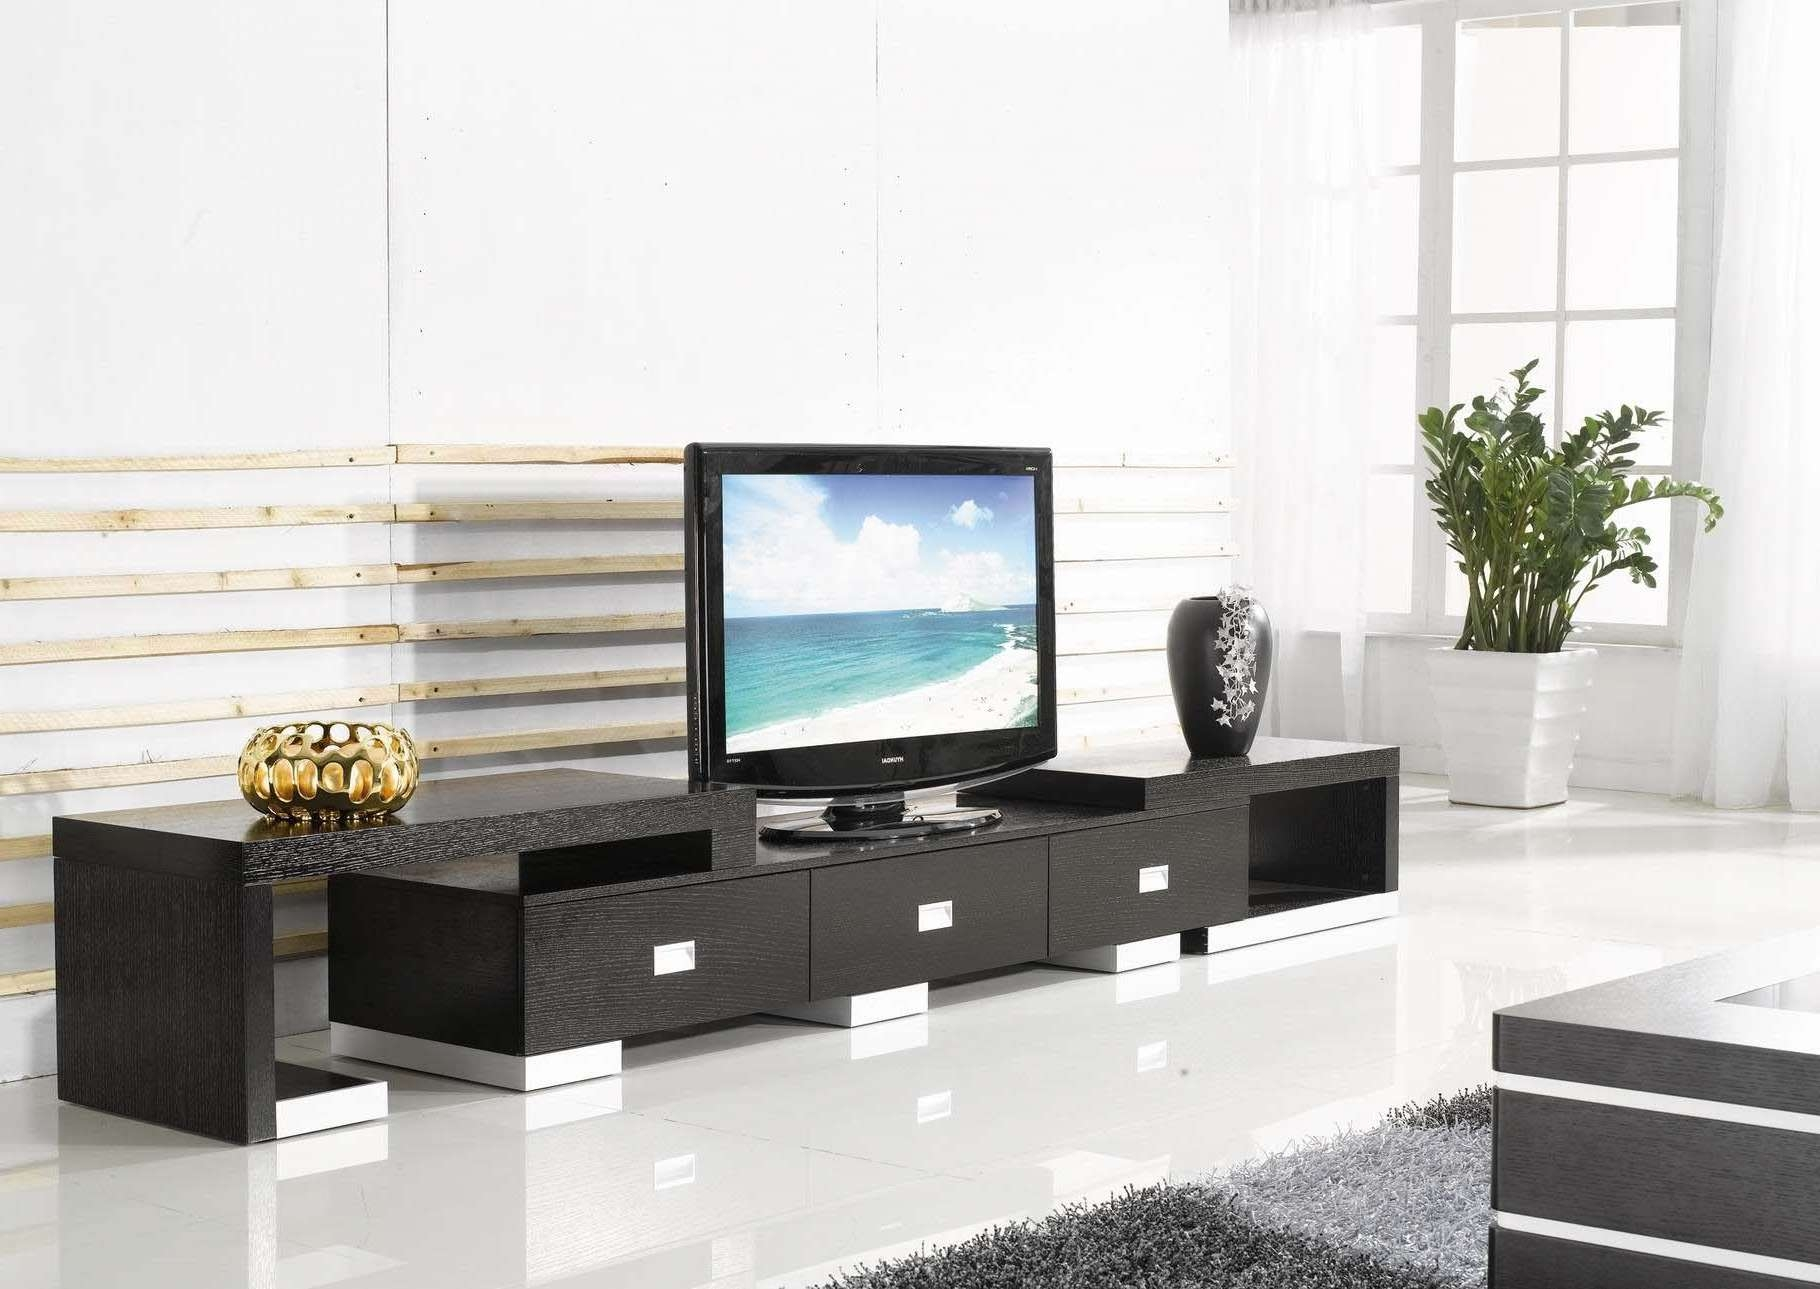 Coffee Tables : Living Room Coffee Table Sets Small Occasional Pertaining To Tv Cabinets And Coffee Table Sets (View 20 of 20)